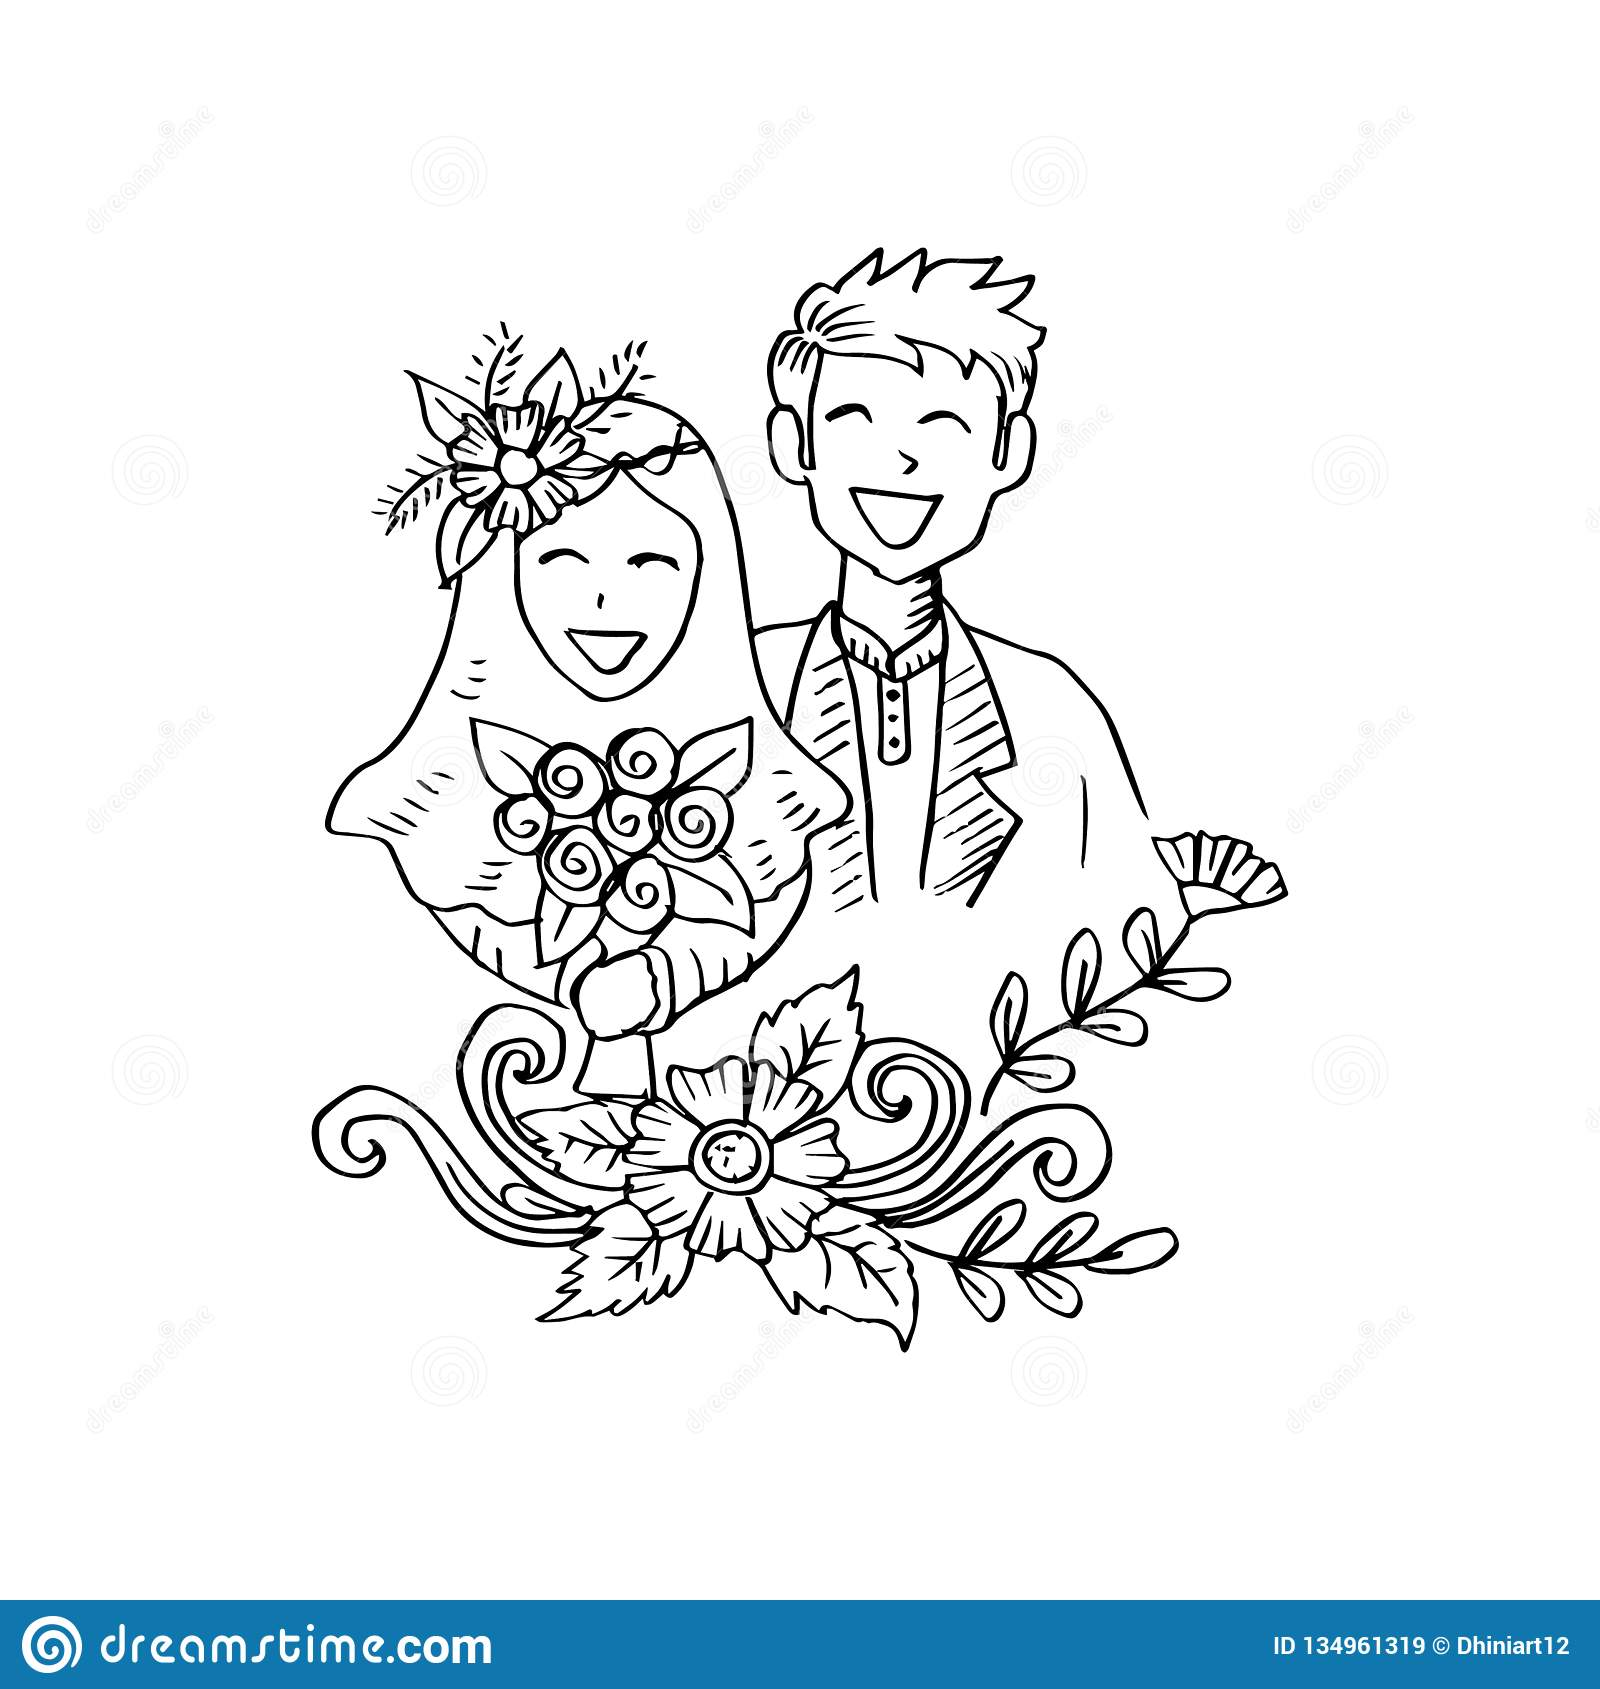 Muslim Couple Image Drawing Black And White